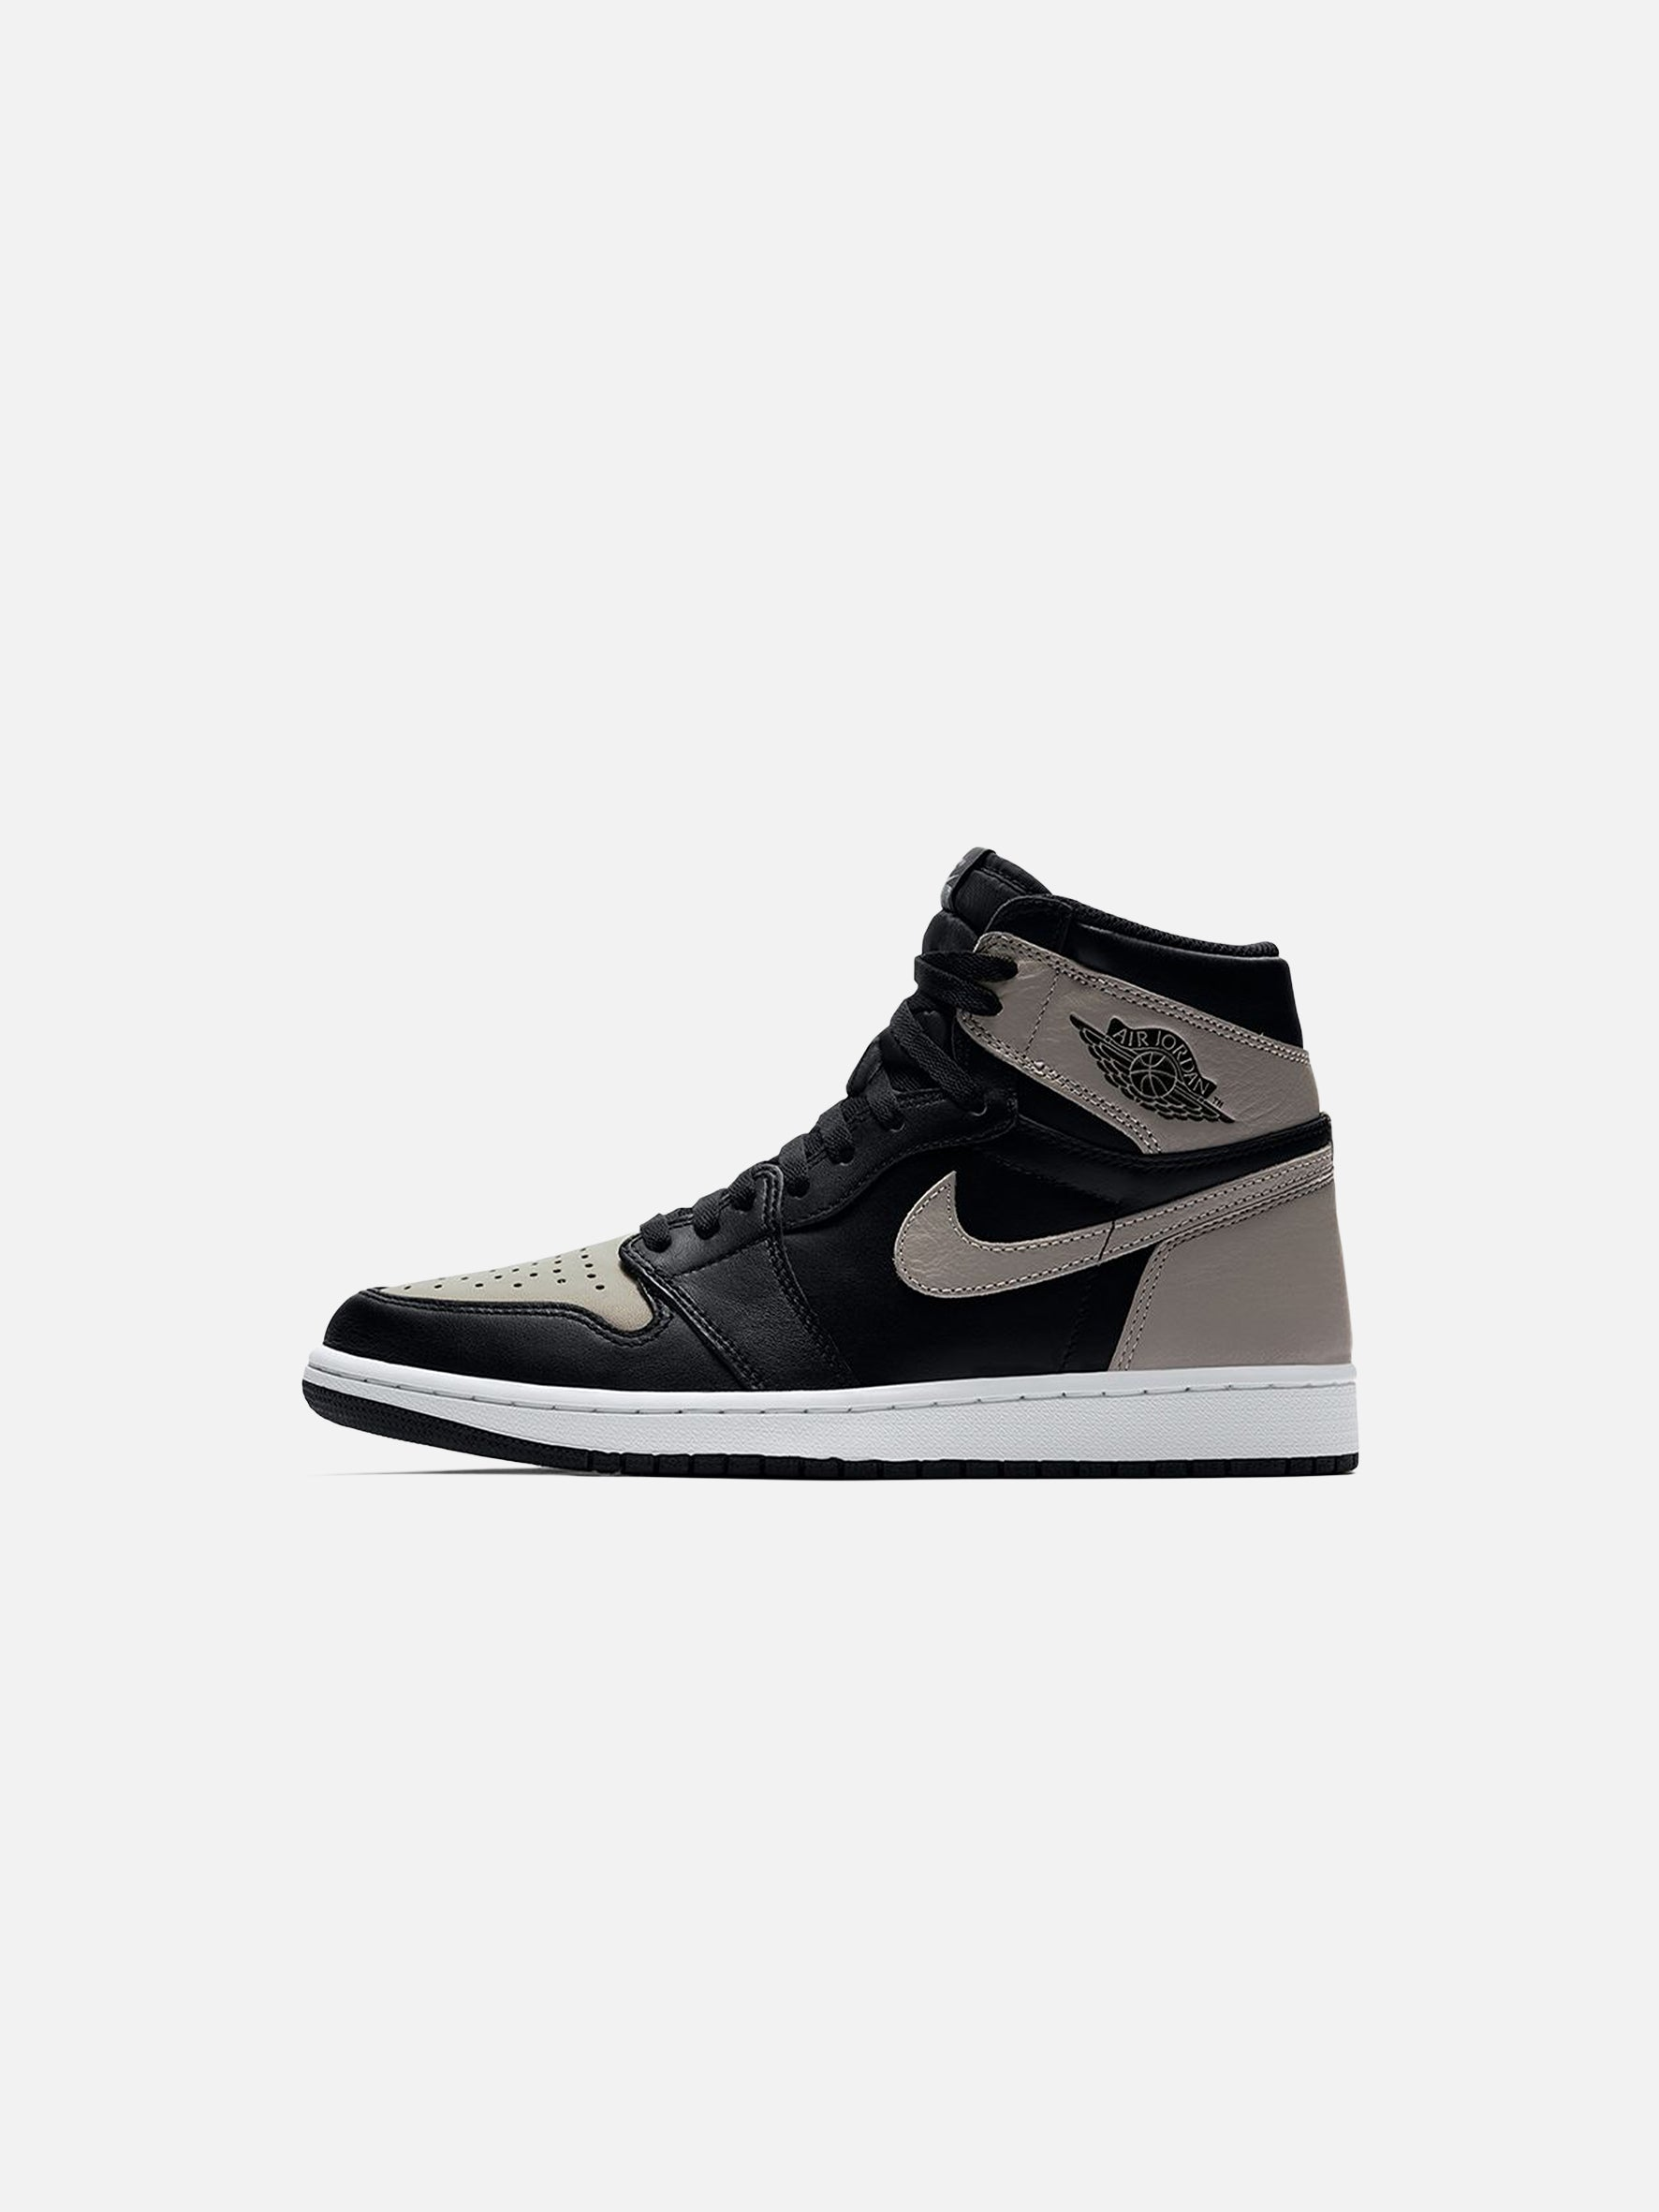 Nike Air Jordan 1 Retro Shadow